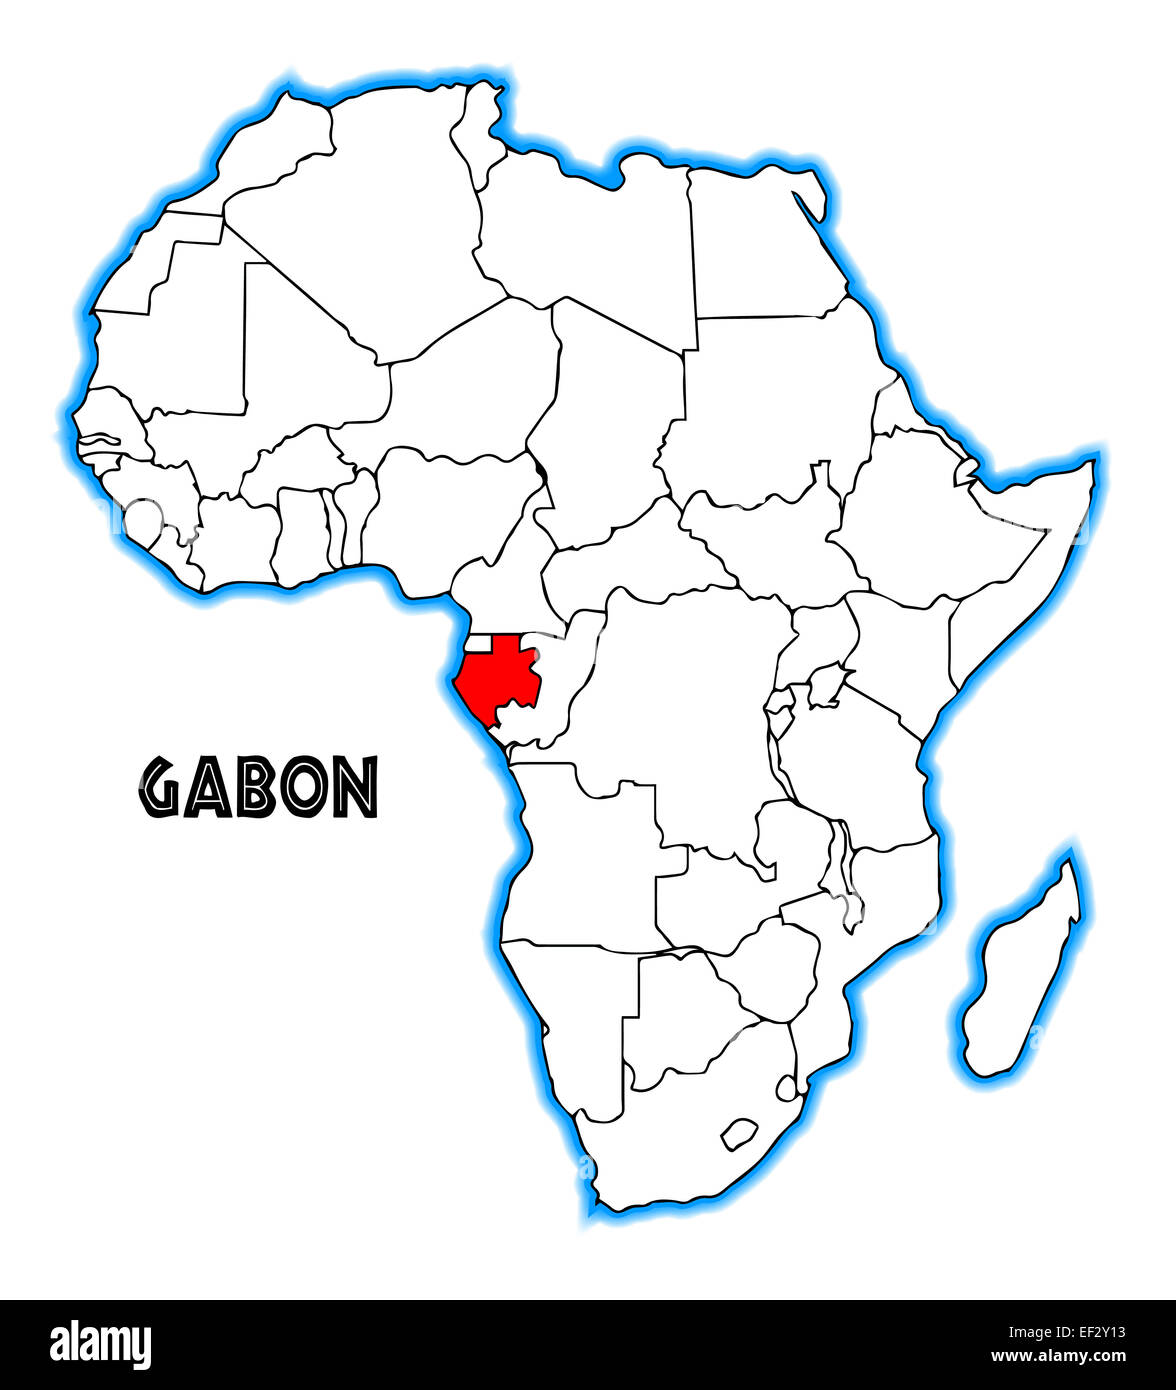 Gabon Outline Inset Into A Map Of Africa Over A White Background - Gabon blank map